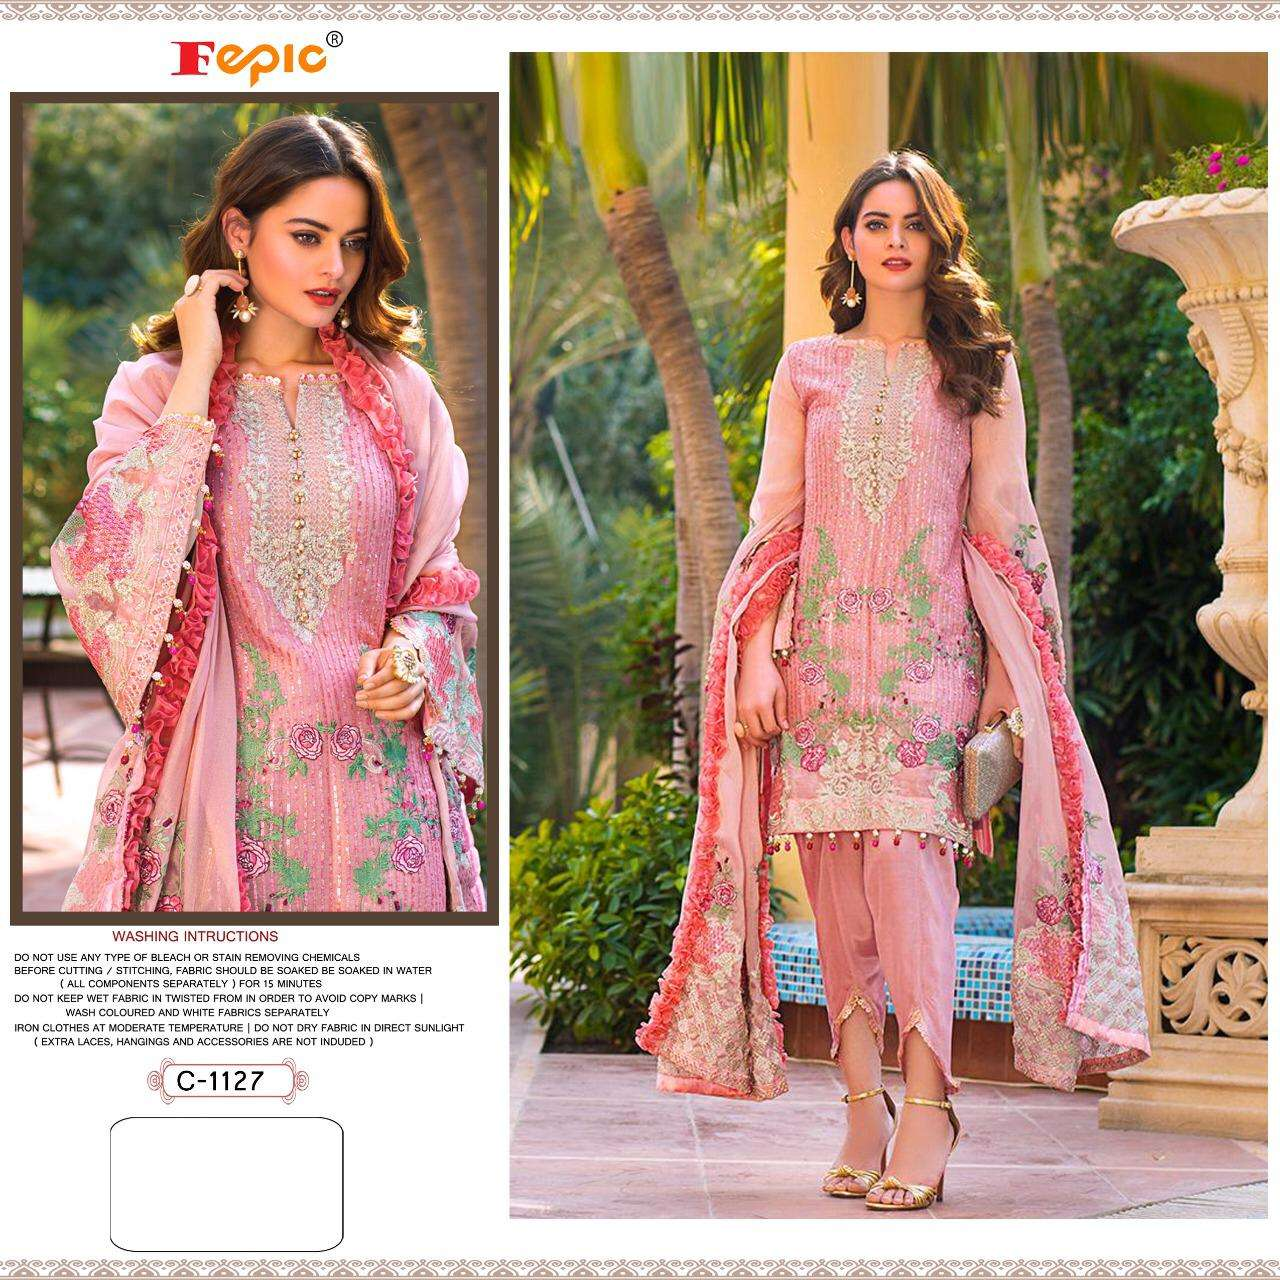 FEPIC ROSEMEEN D.NO 1127 DESIGNER HEAVY GEORGETTE WITH EMBROIDERY WORK PAKISTANI PATTERN PARTYWEAR SUITS IN SINGLES